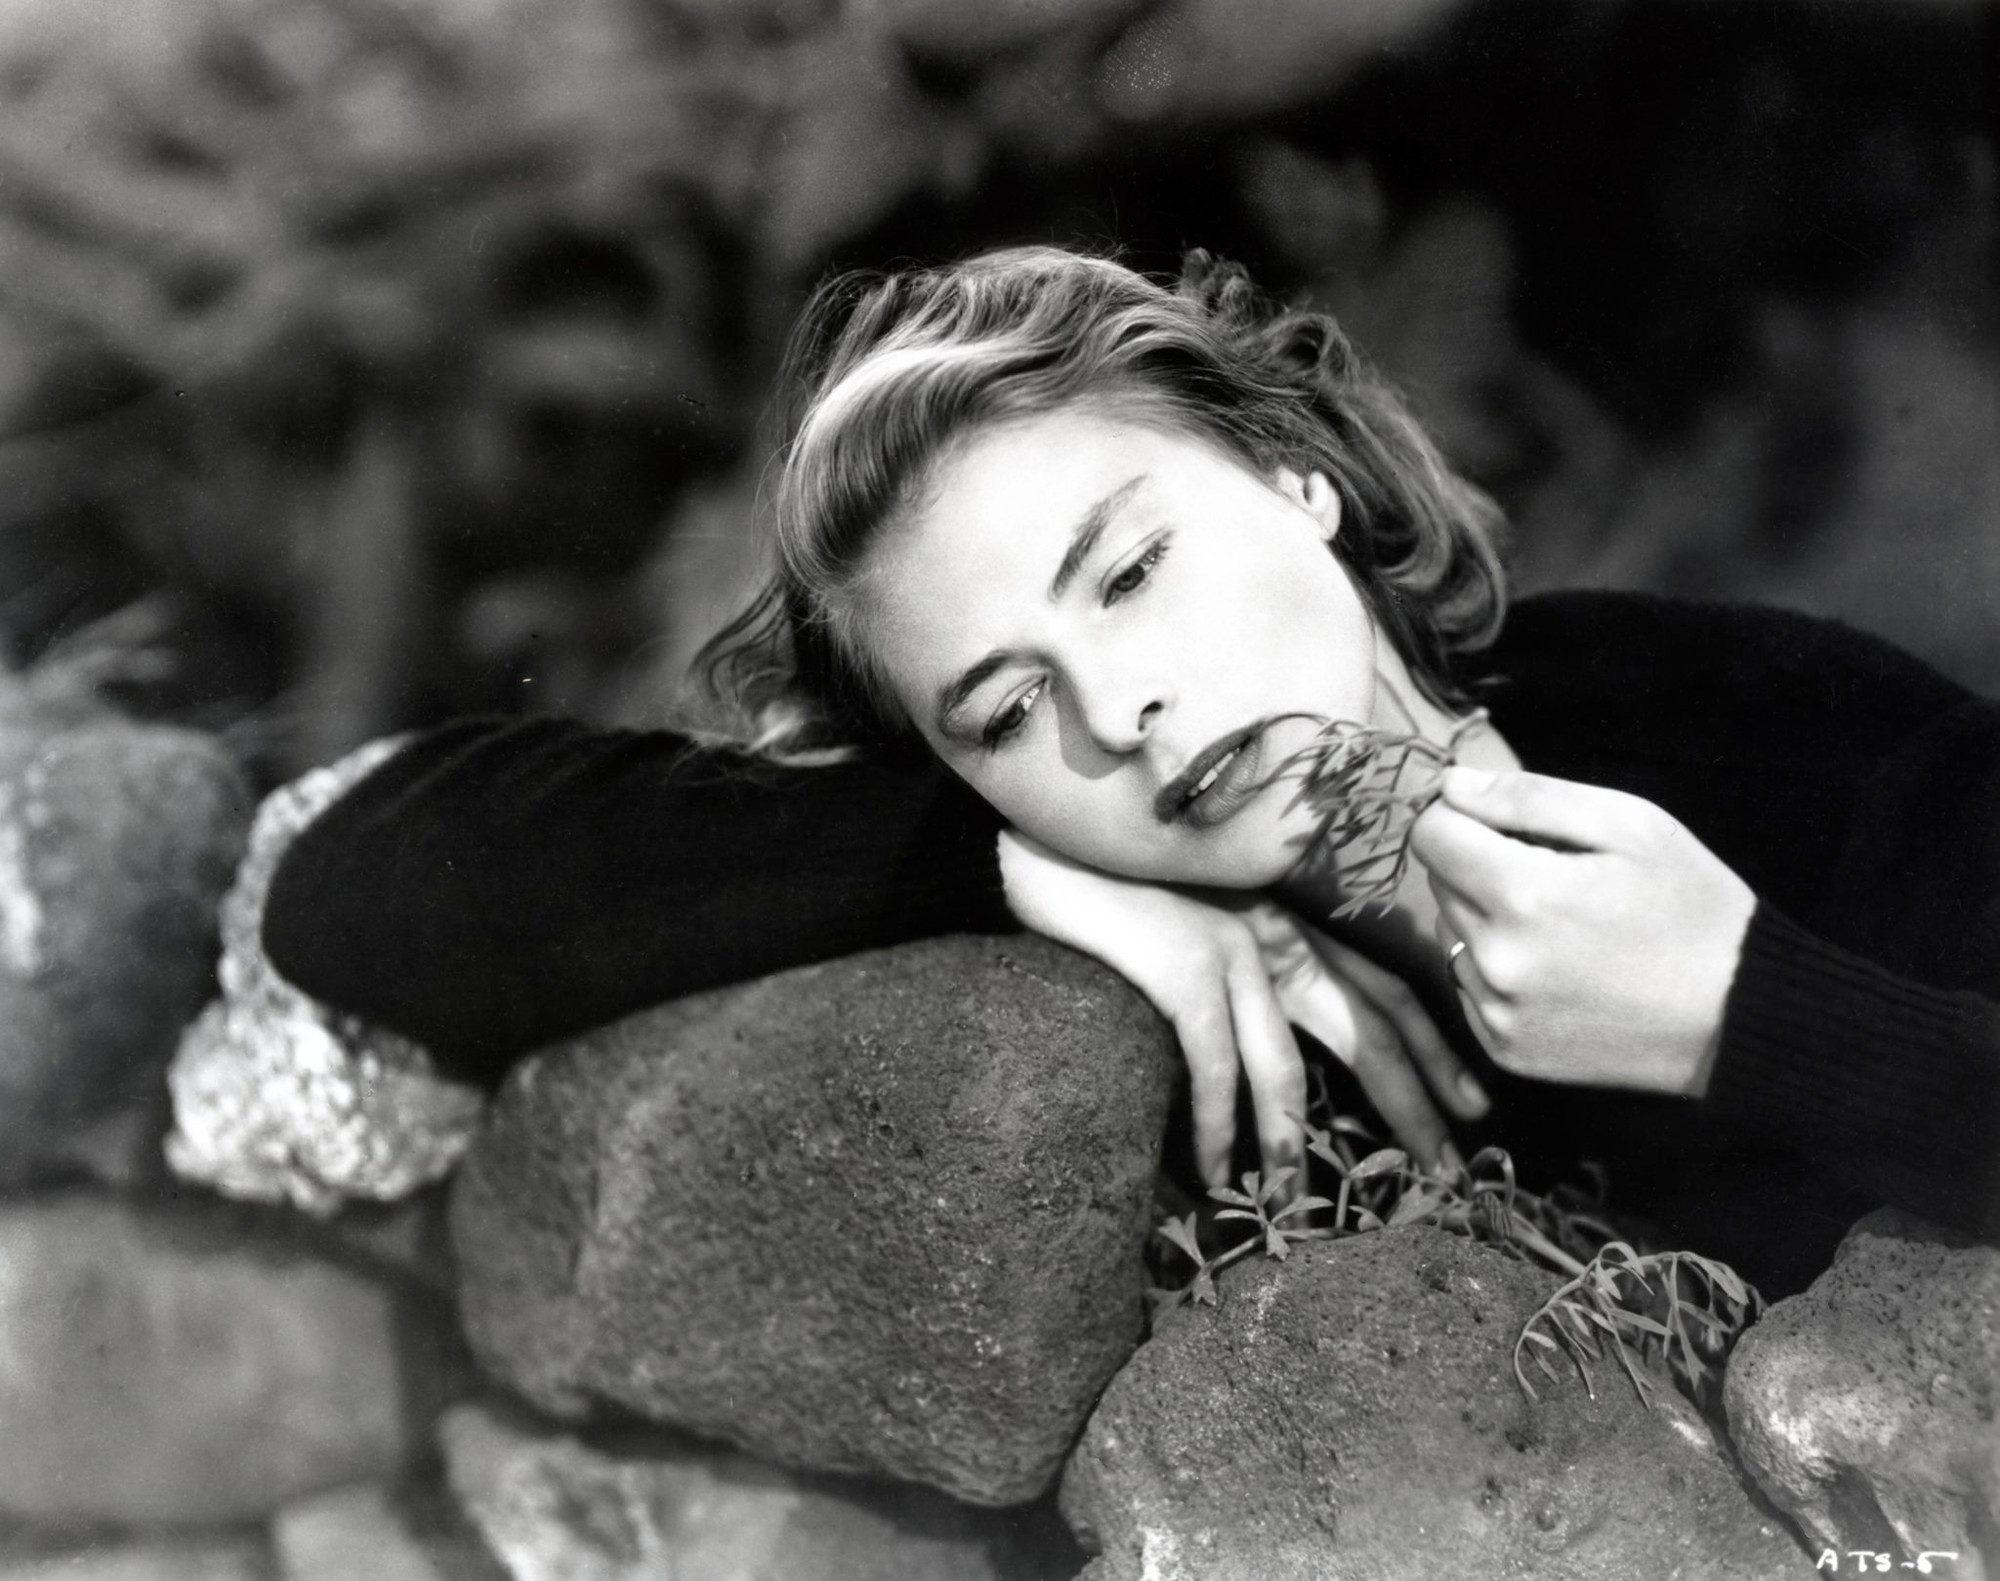 Stromboli. 1950. Italy/USA. Directed by Roberto Rossellini. Courtesy The Museum of Modern Art Film Stills Archive